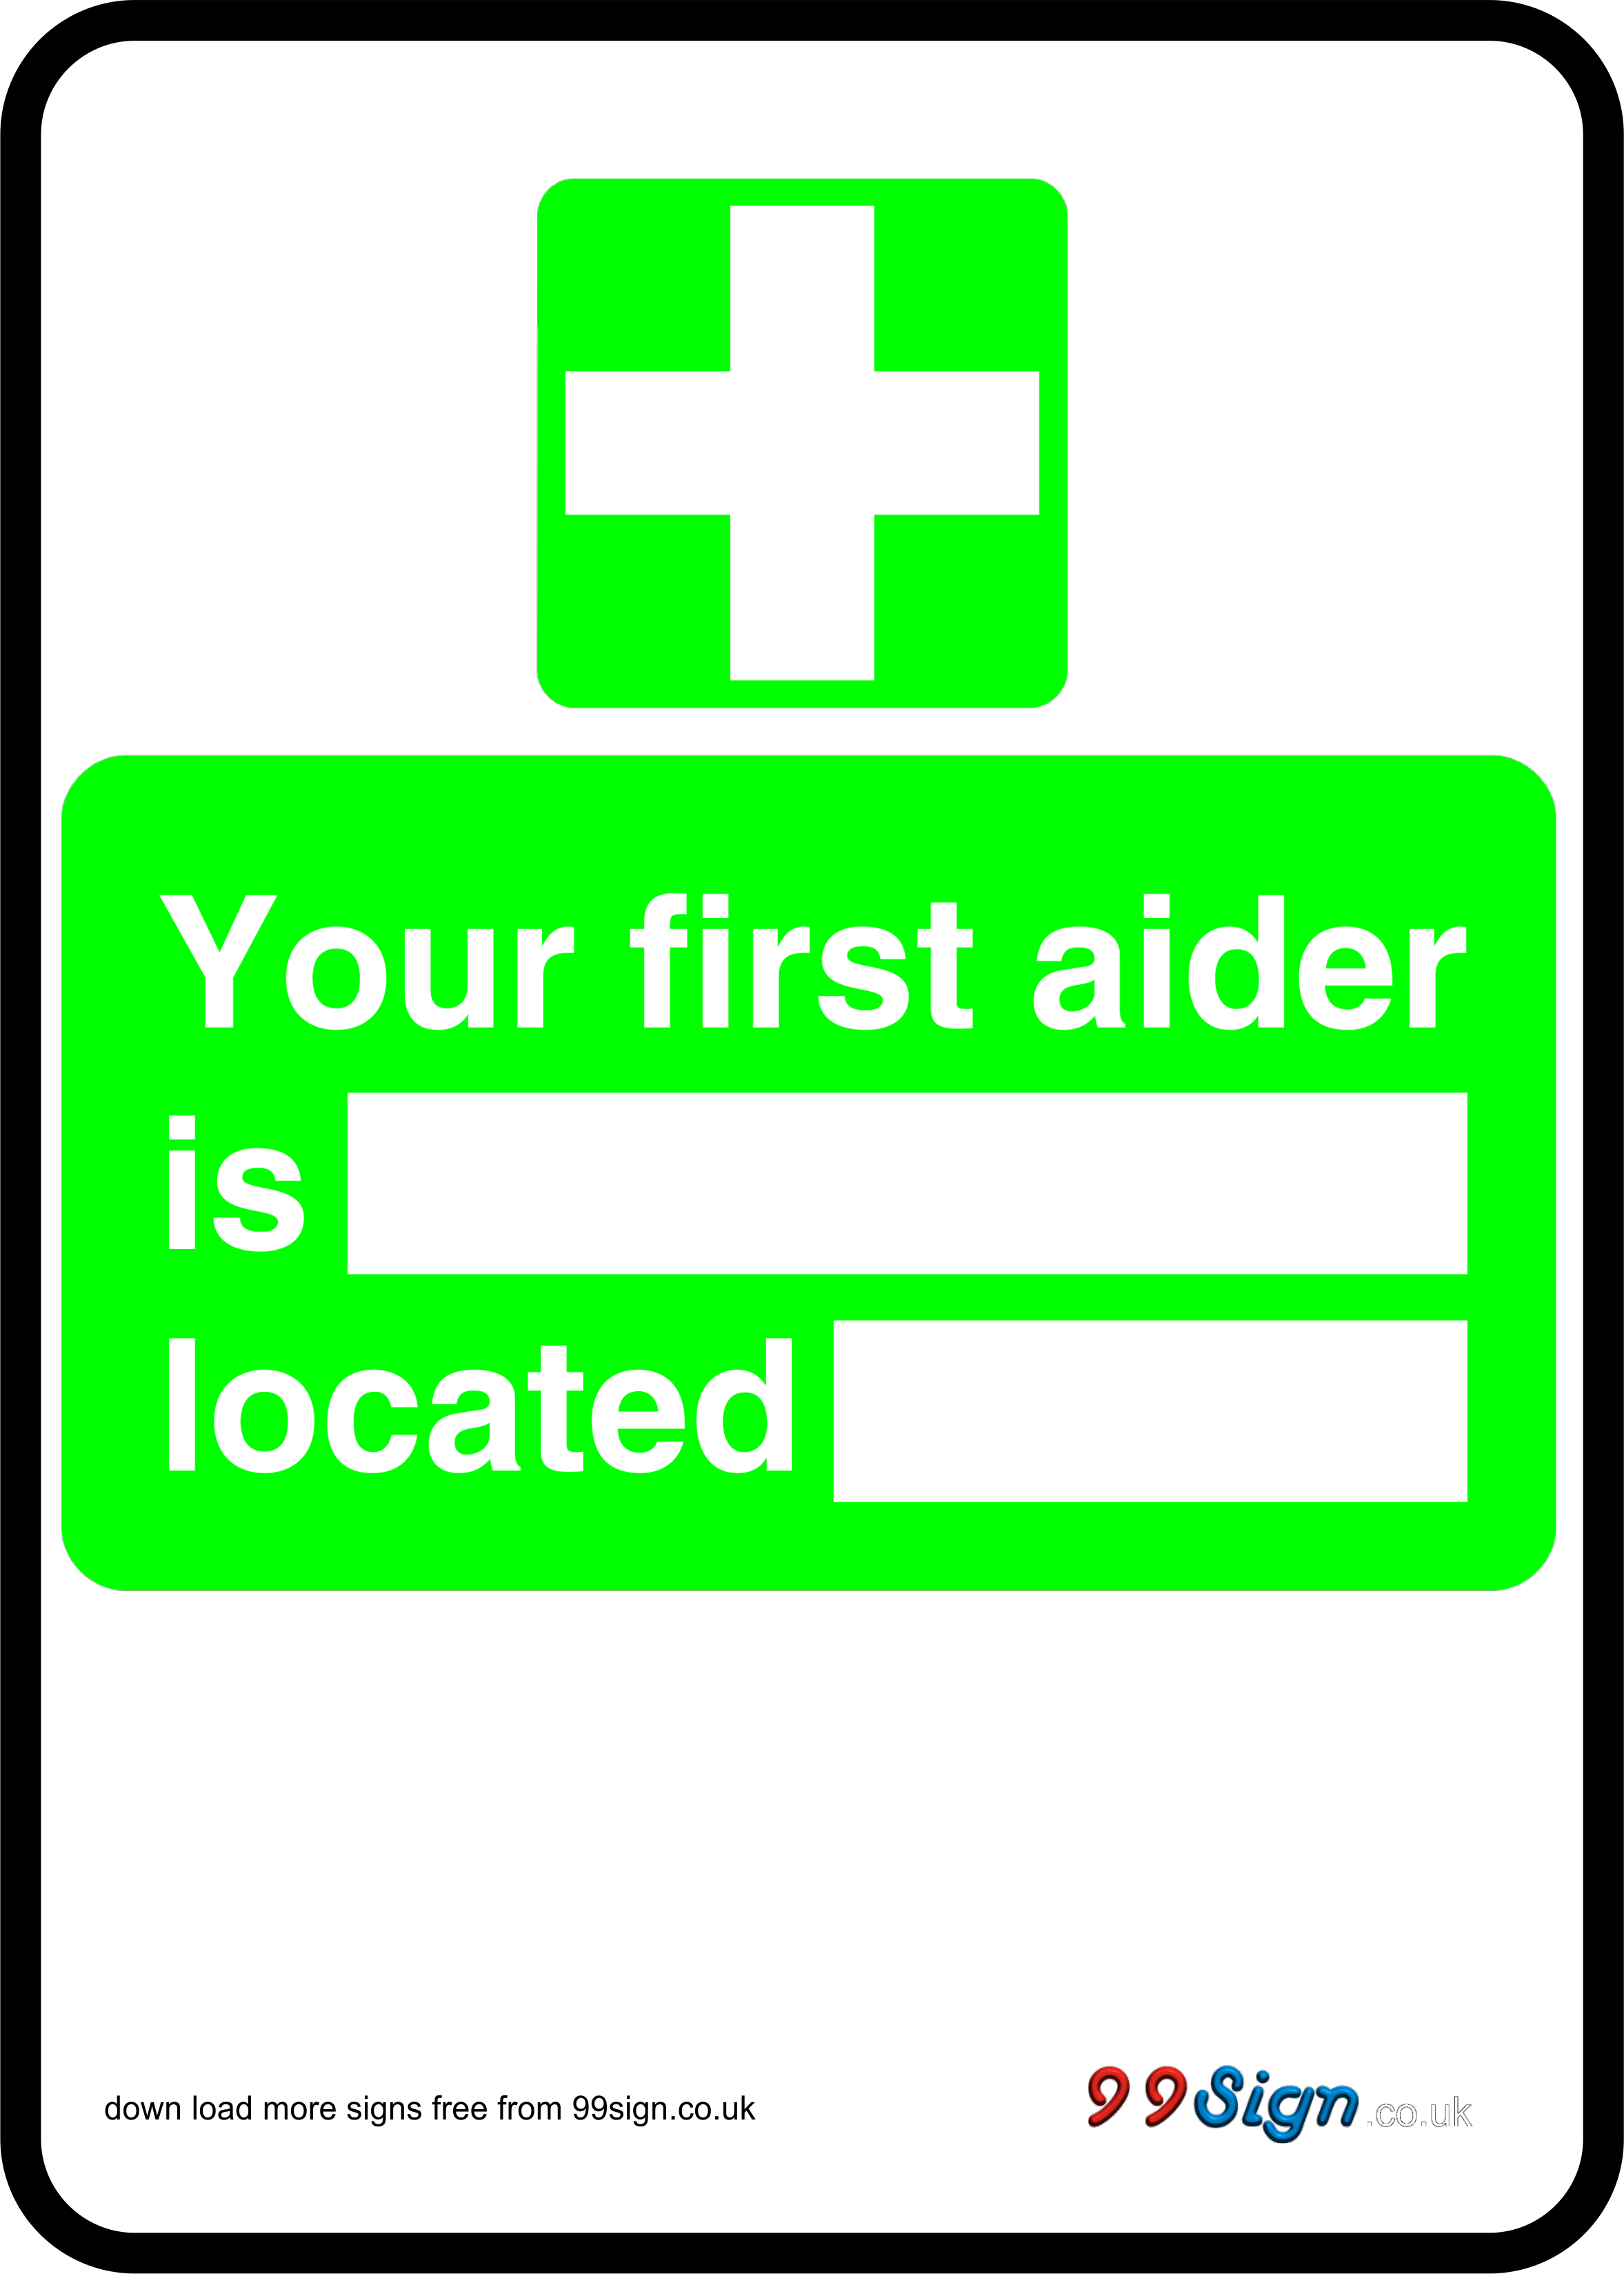 Free prinable first aid sign your first aider is located free free prinable first aid sign your first aider is located free template clipart printable signage or low cost metal faced sign yelopaper Image collections